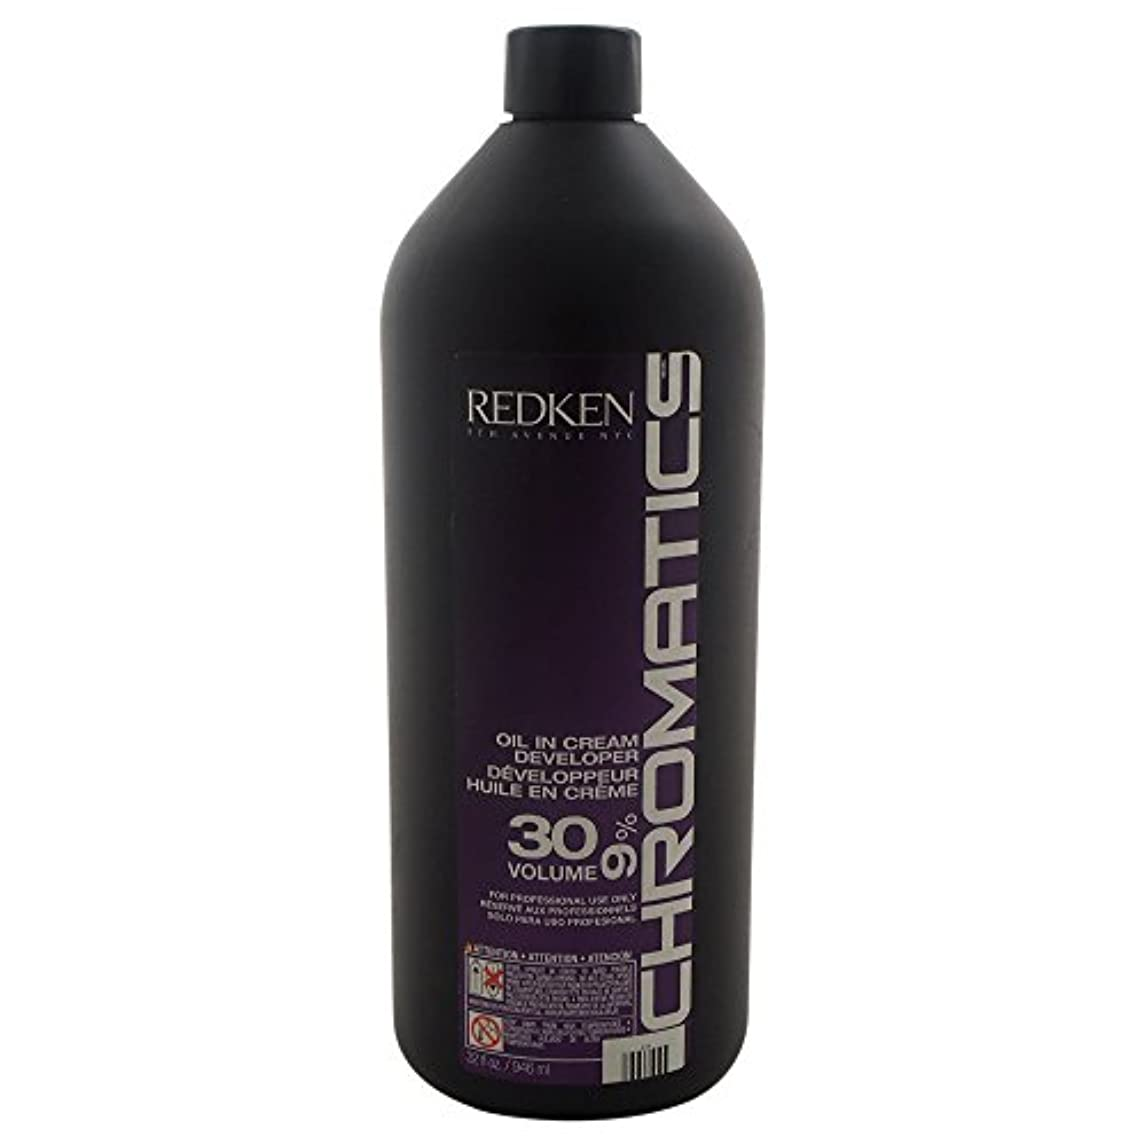 納屋以下背が高いRedken Chromatics Oil In Cream Developer 30 Volume 9 Percent Cream, 32 Ounce by Redken